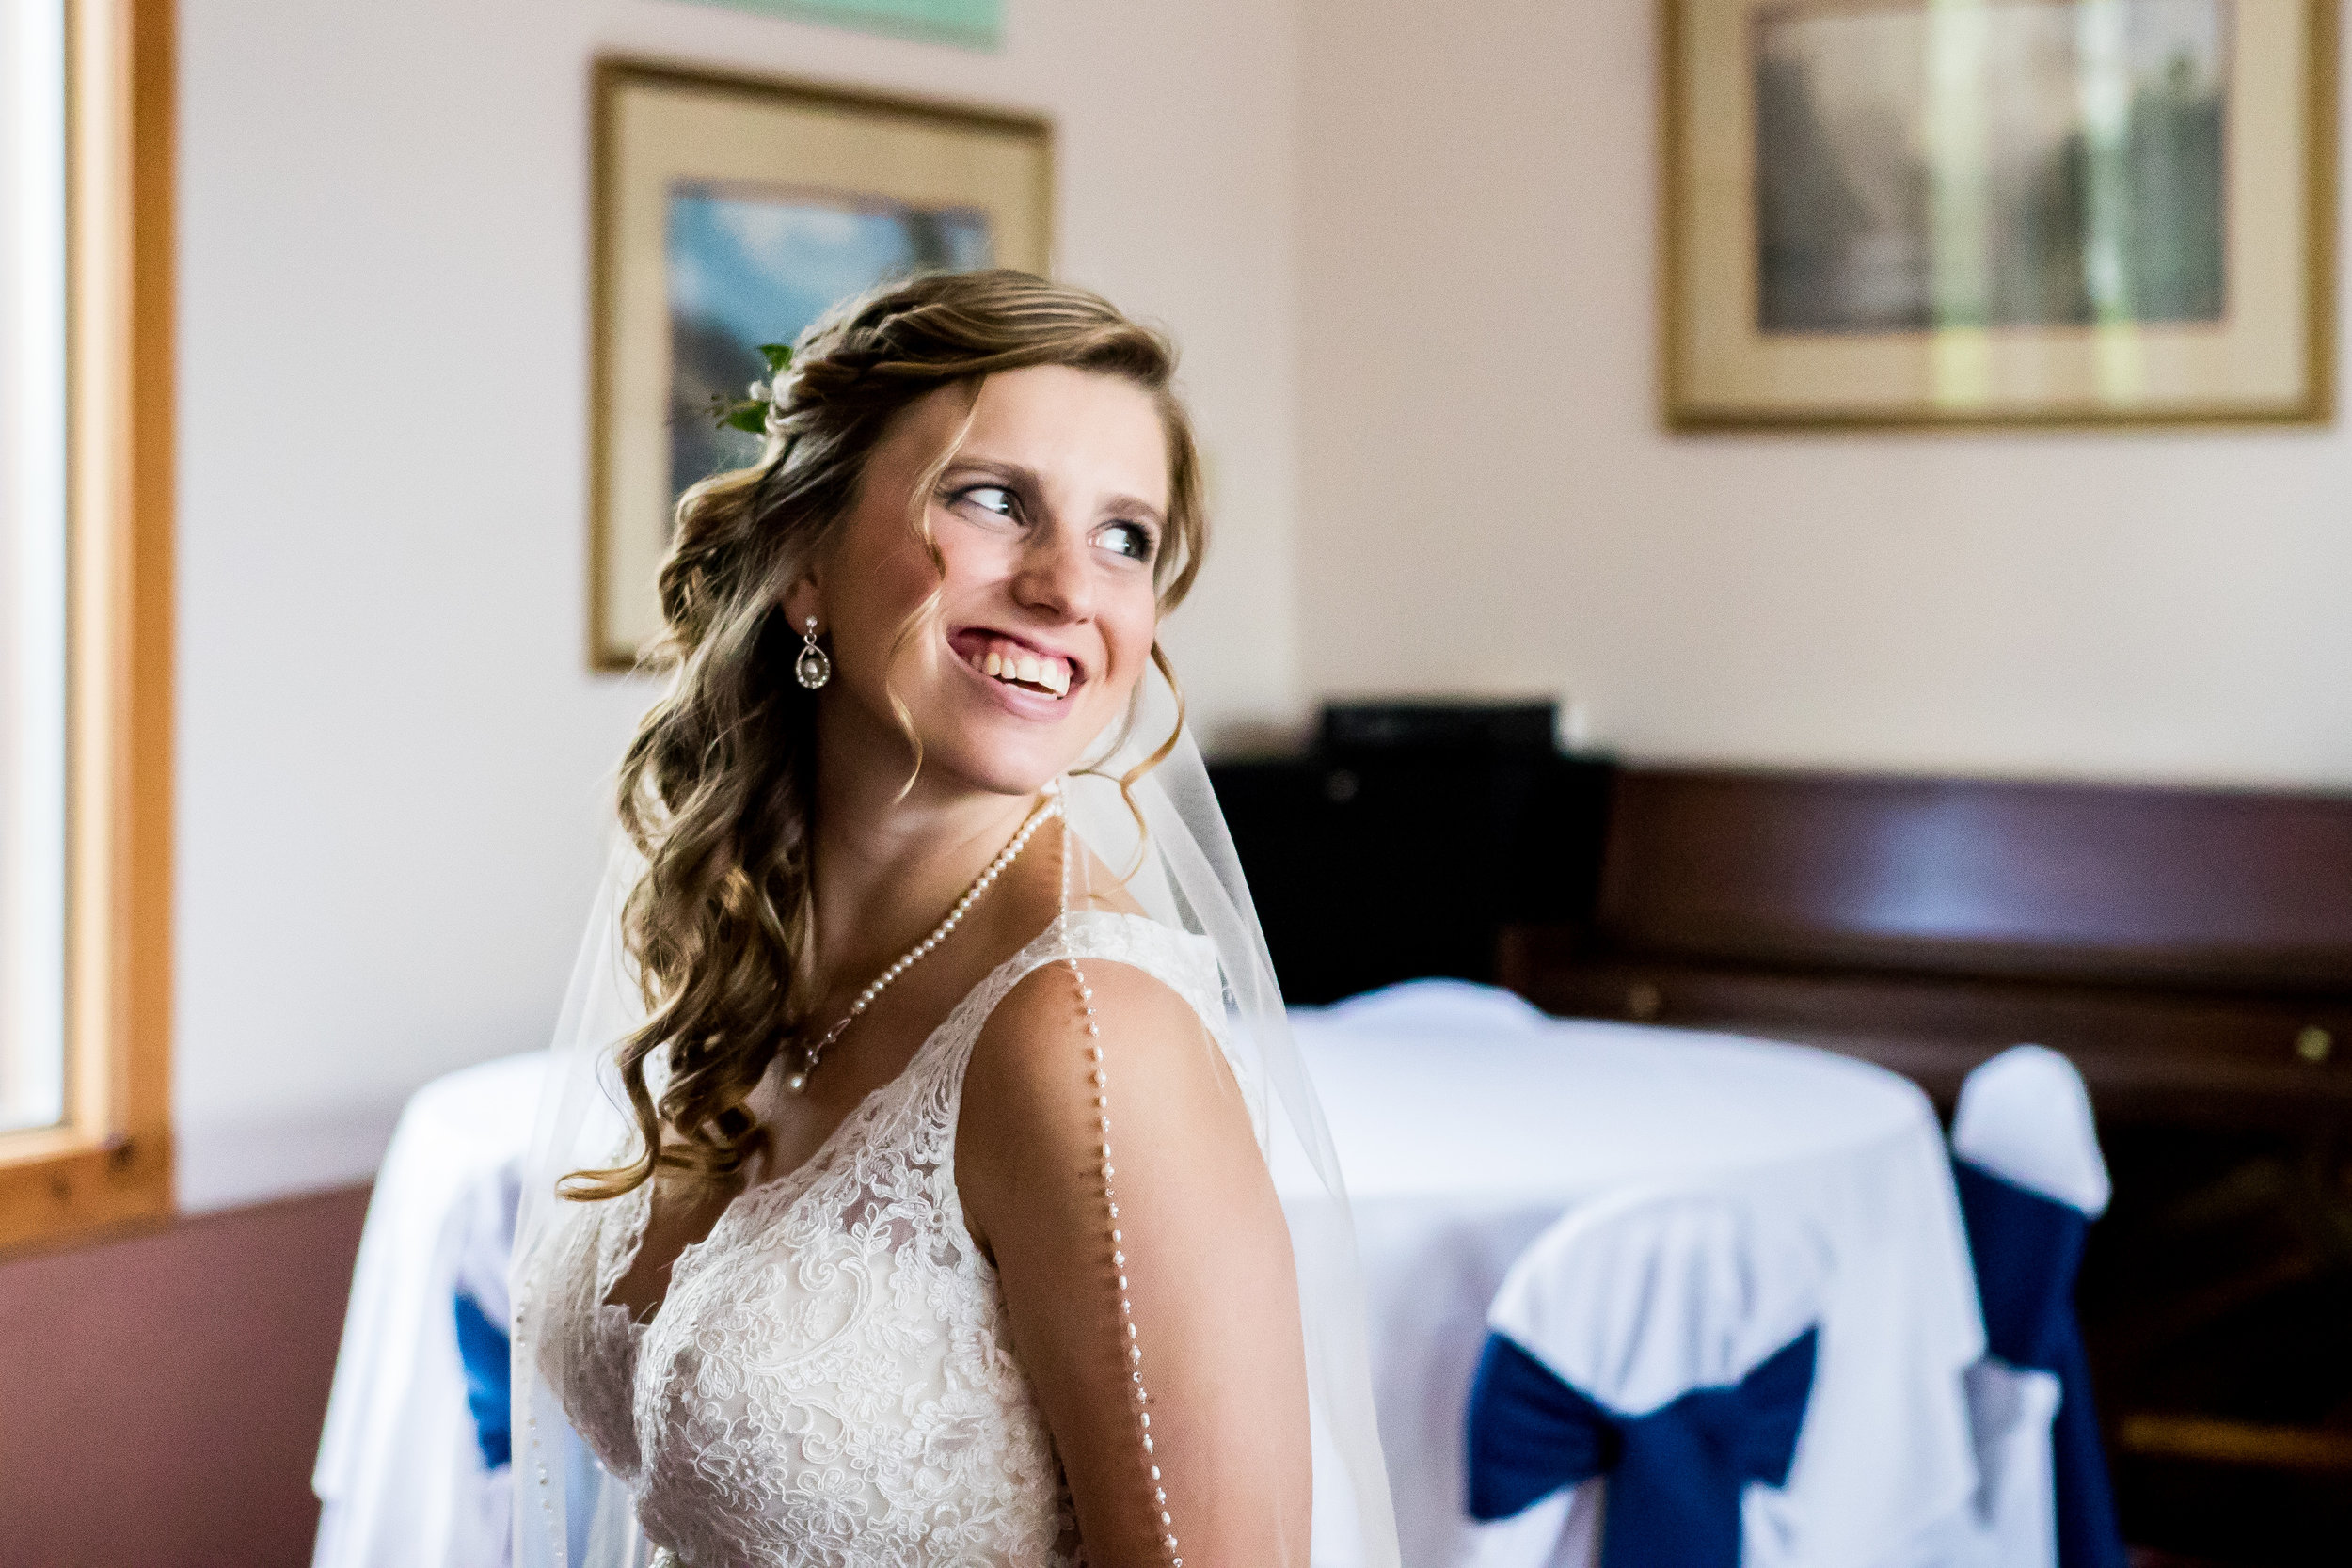 Wedding_Photography_Vinings-335.jpg